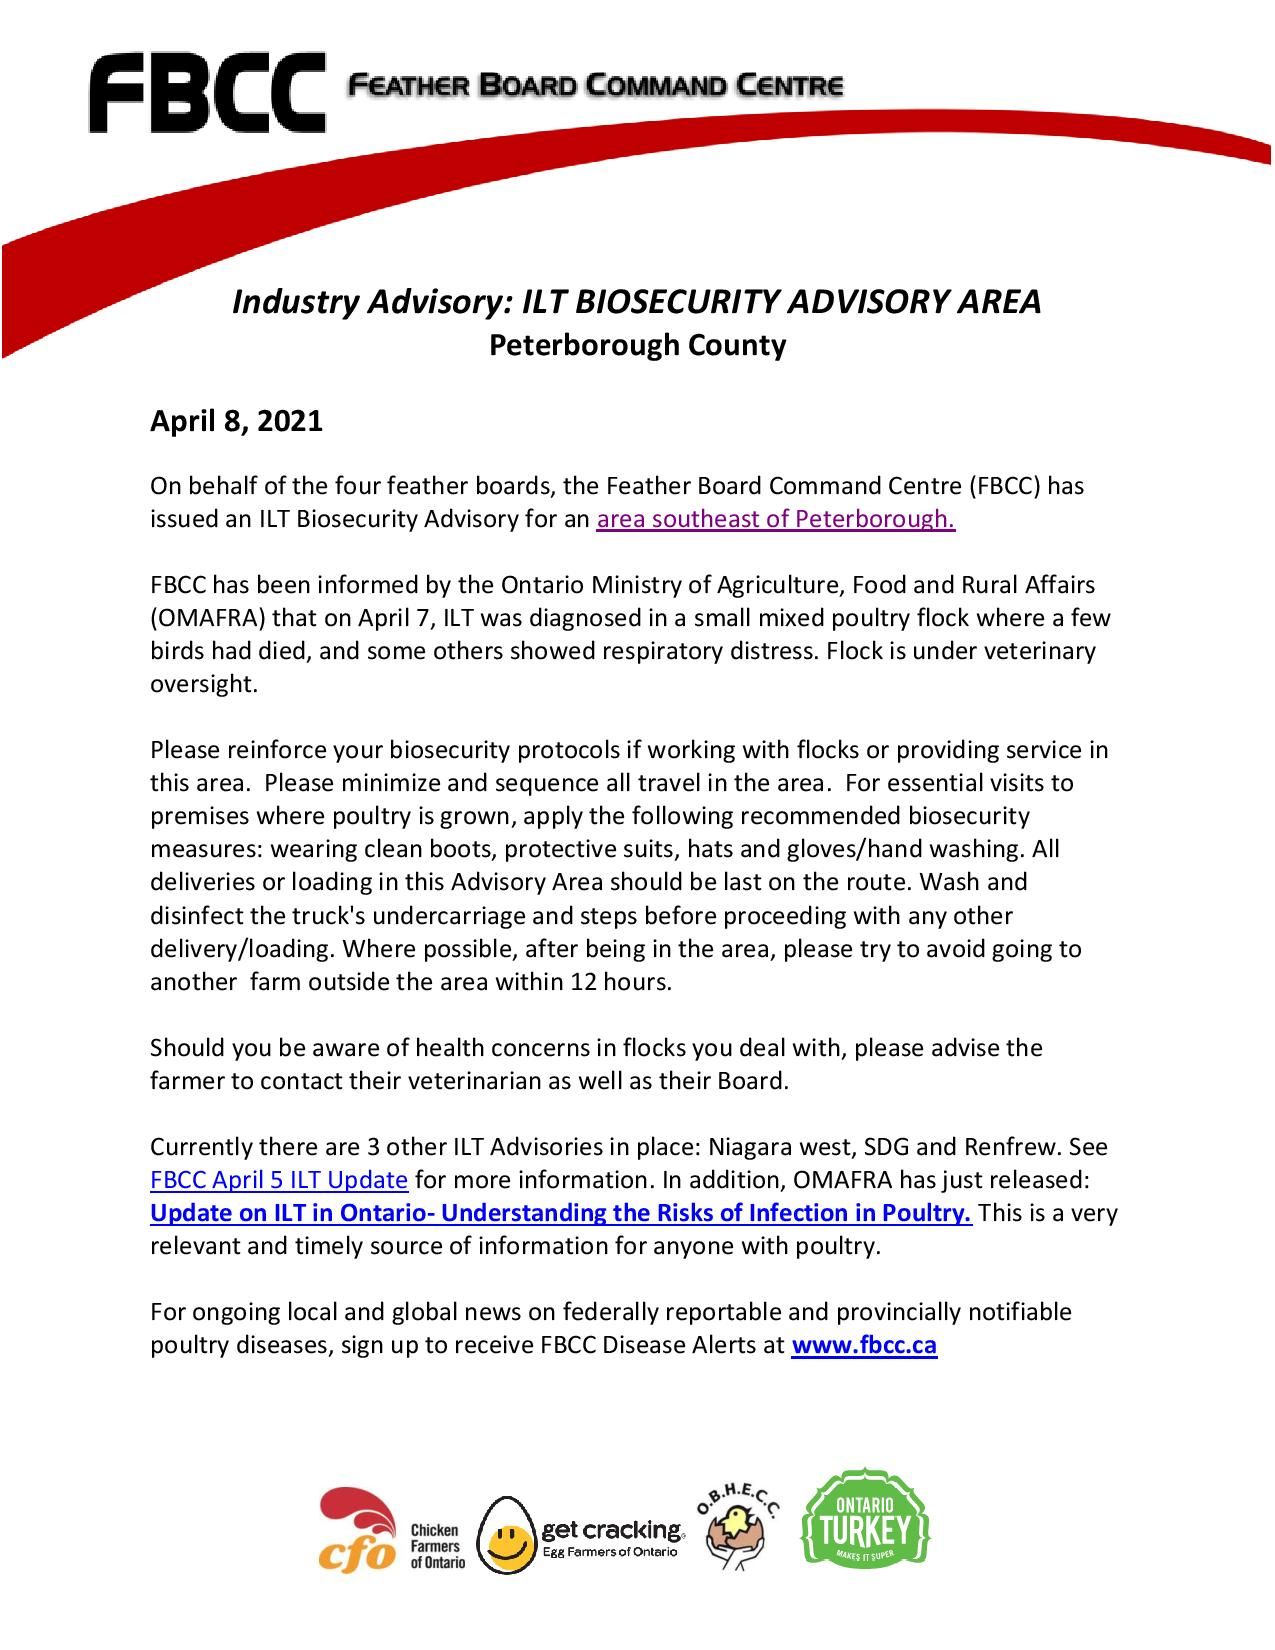 ILT advisory for Peterborough from Apr 8, duplicate of the PDF posted as a link.